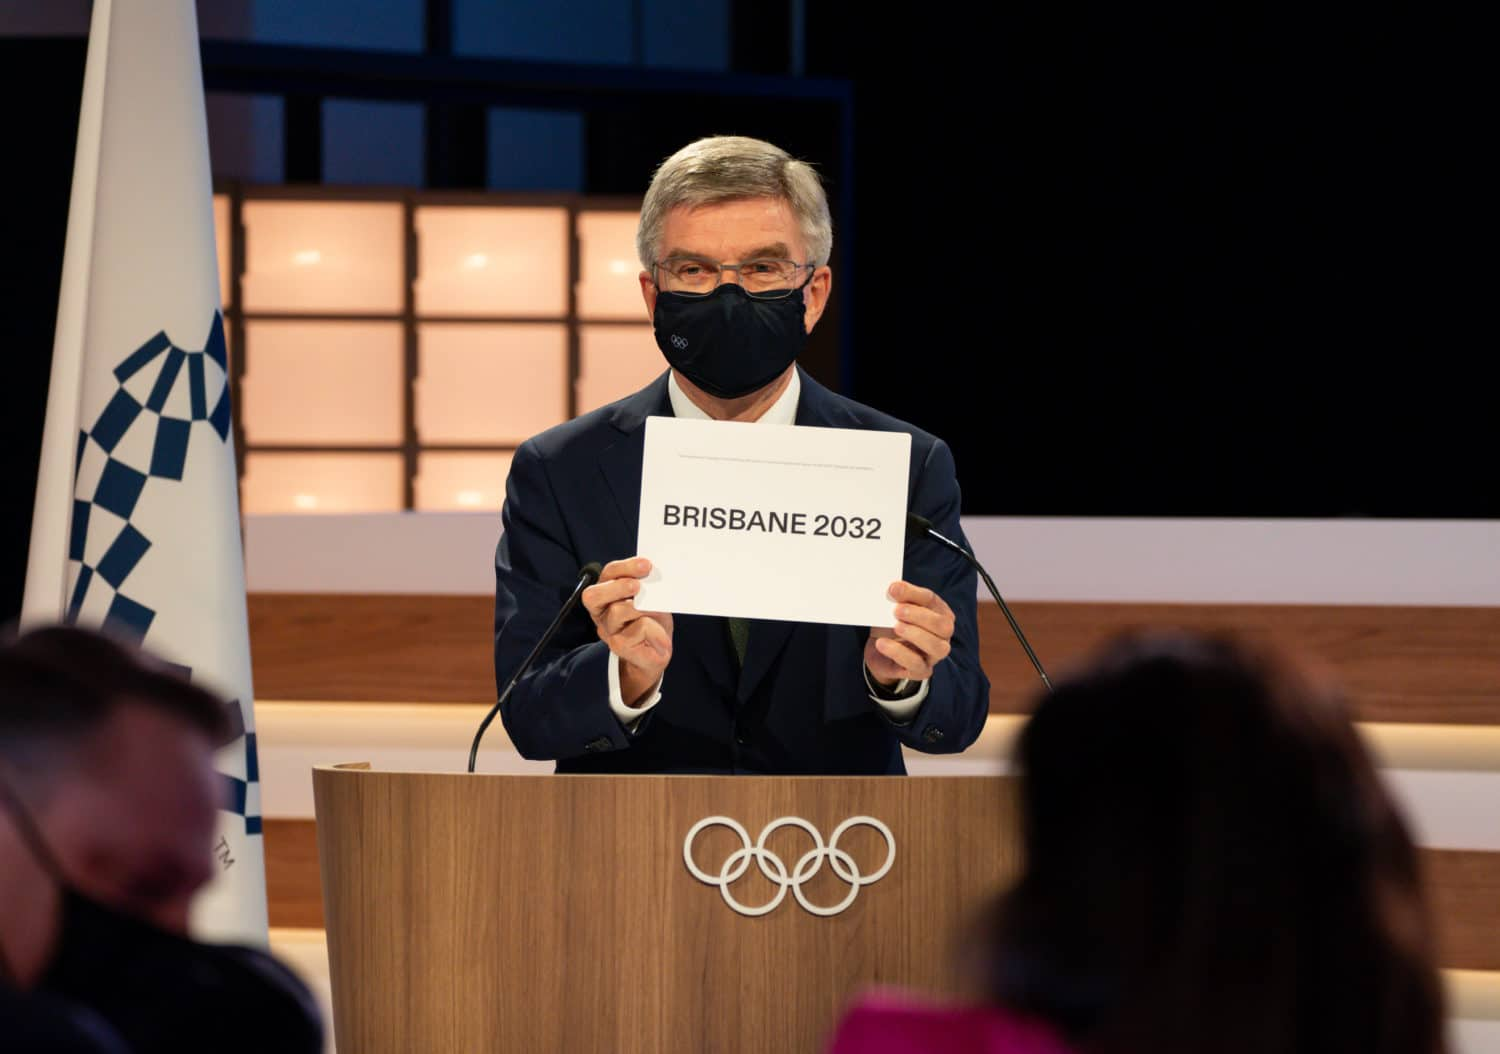 President Thomas Bach announces Brisbane as the host city for the XXXV Olympiad, during the second day of the 138th IOC Session at the Okura Hotel in Tokyo ahead of TOKYO 2020, the XXXII IOC Olympic Games.